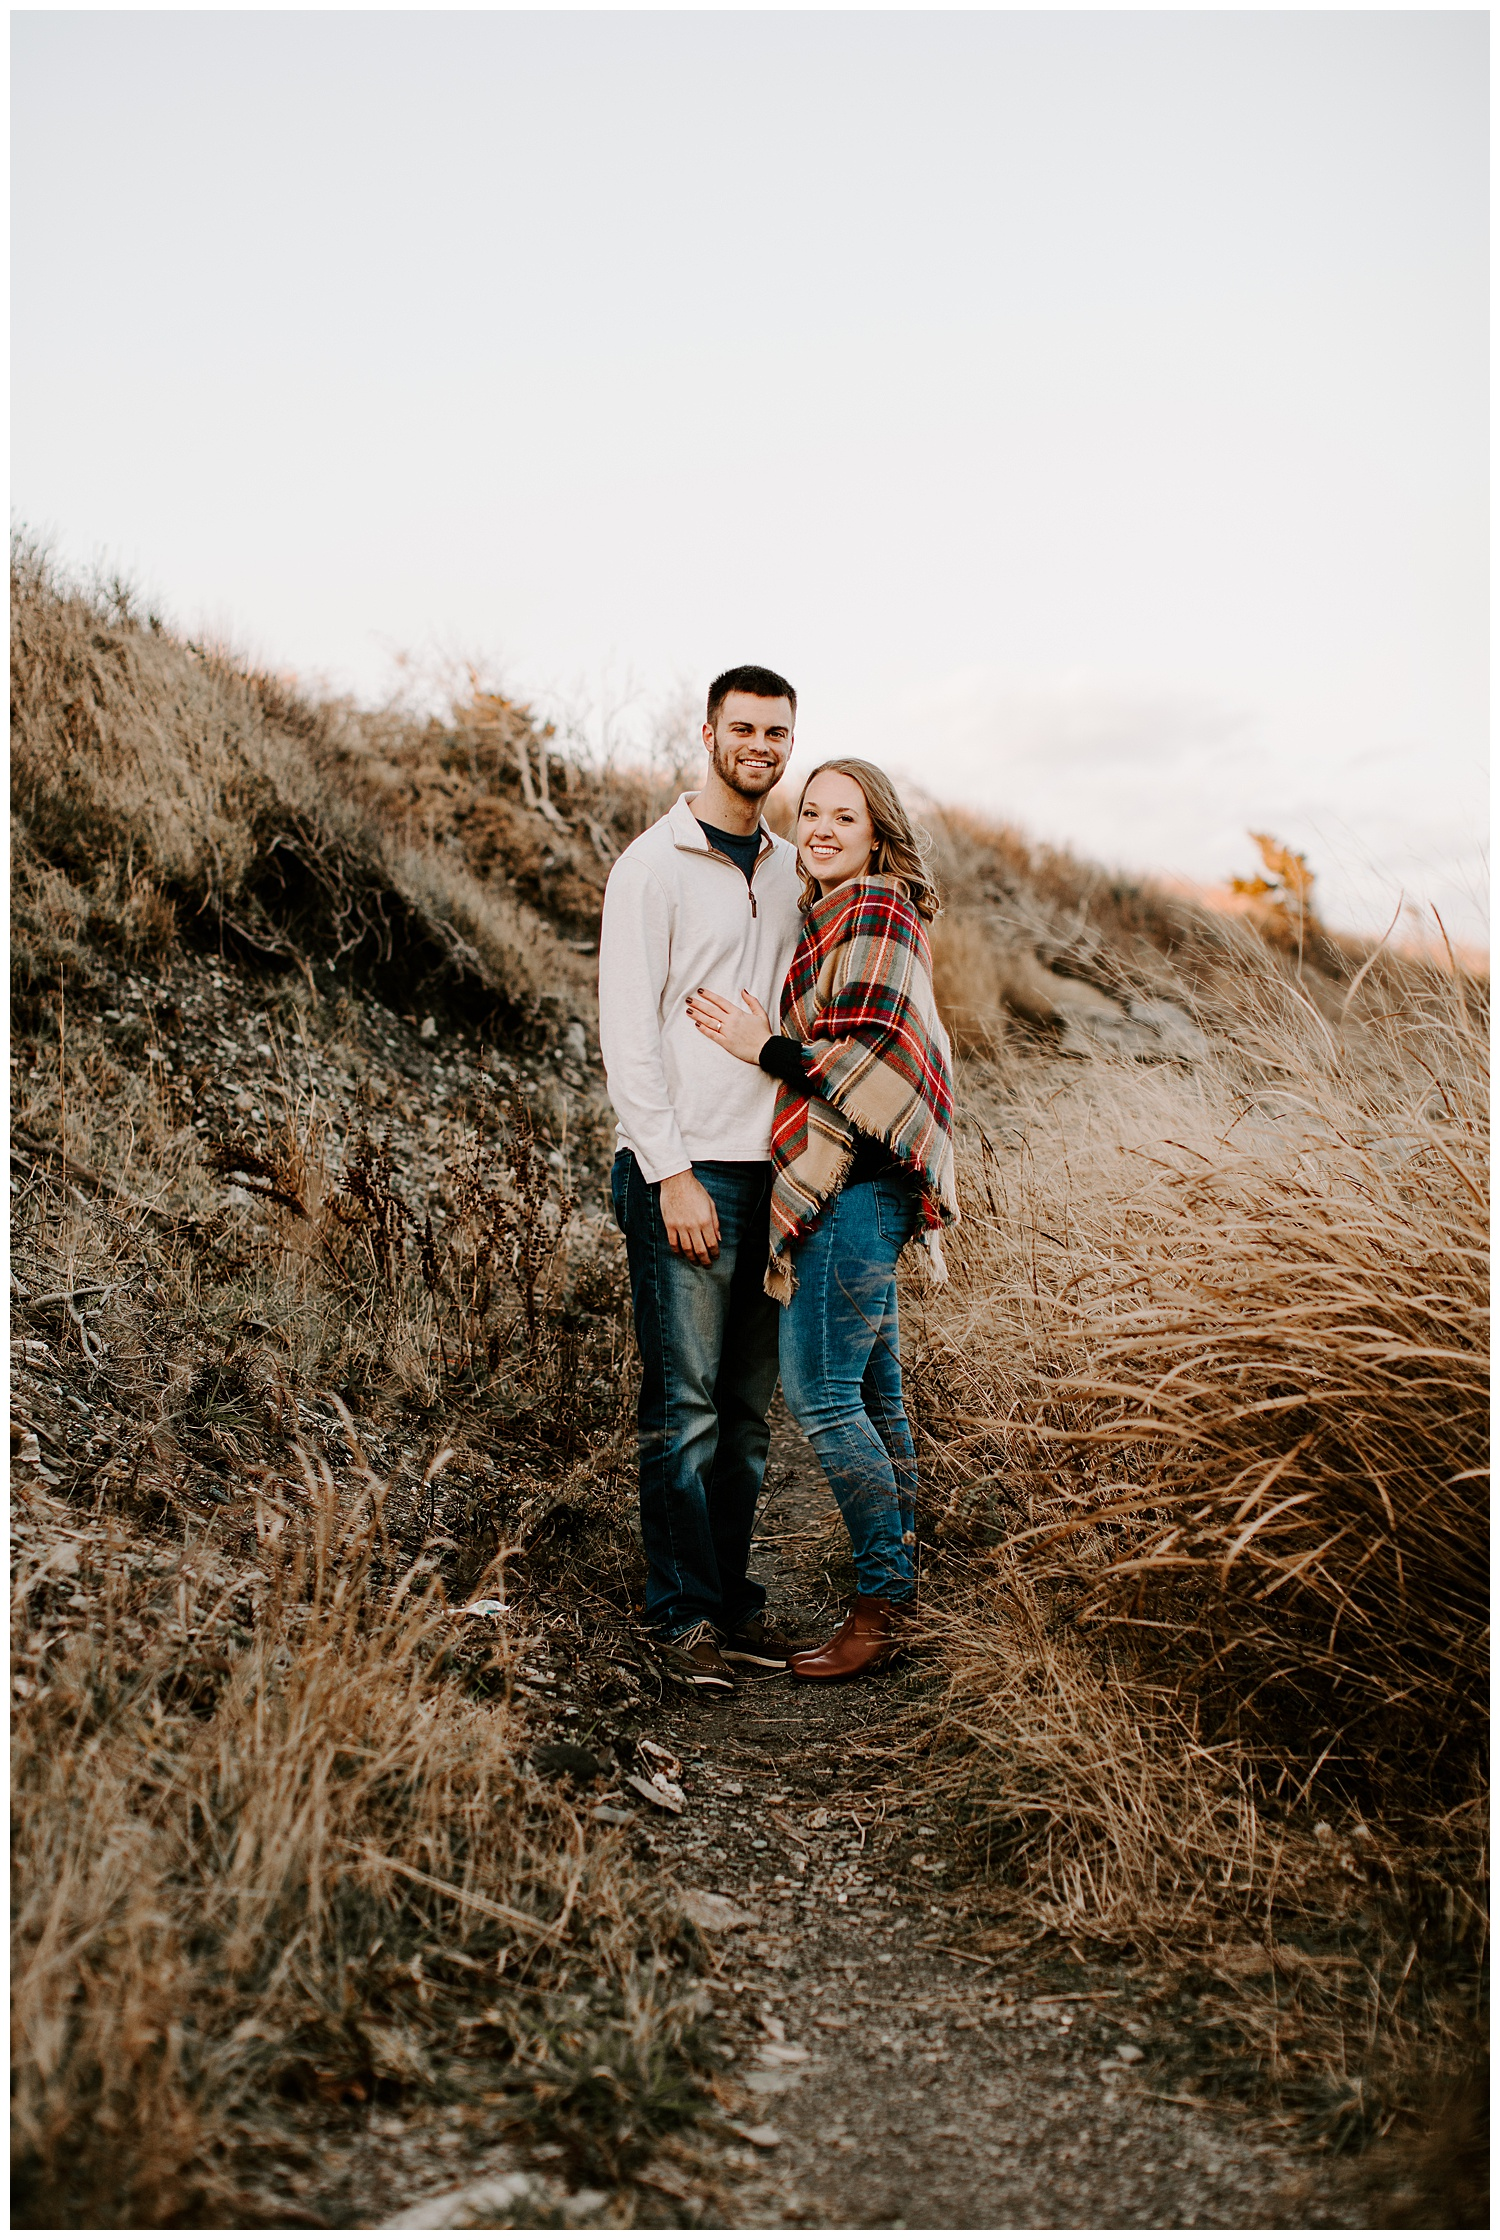 jay_kalyn_beavertail_beach_winter_engagement_session_jamestown_rhode_island08.jpg